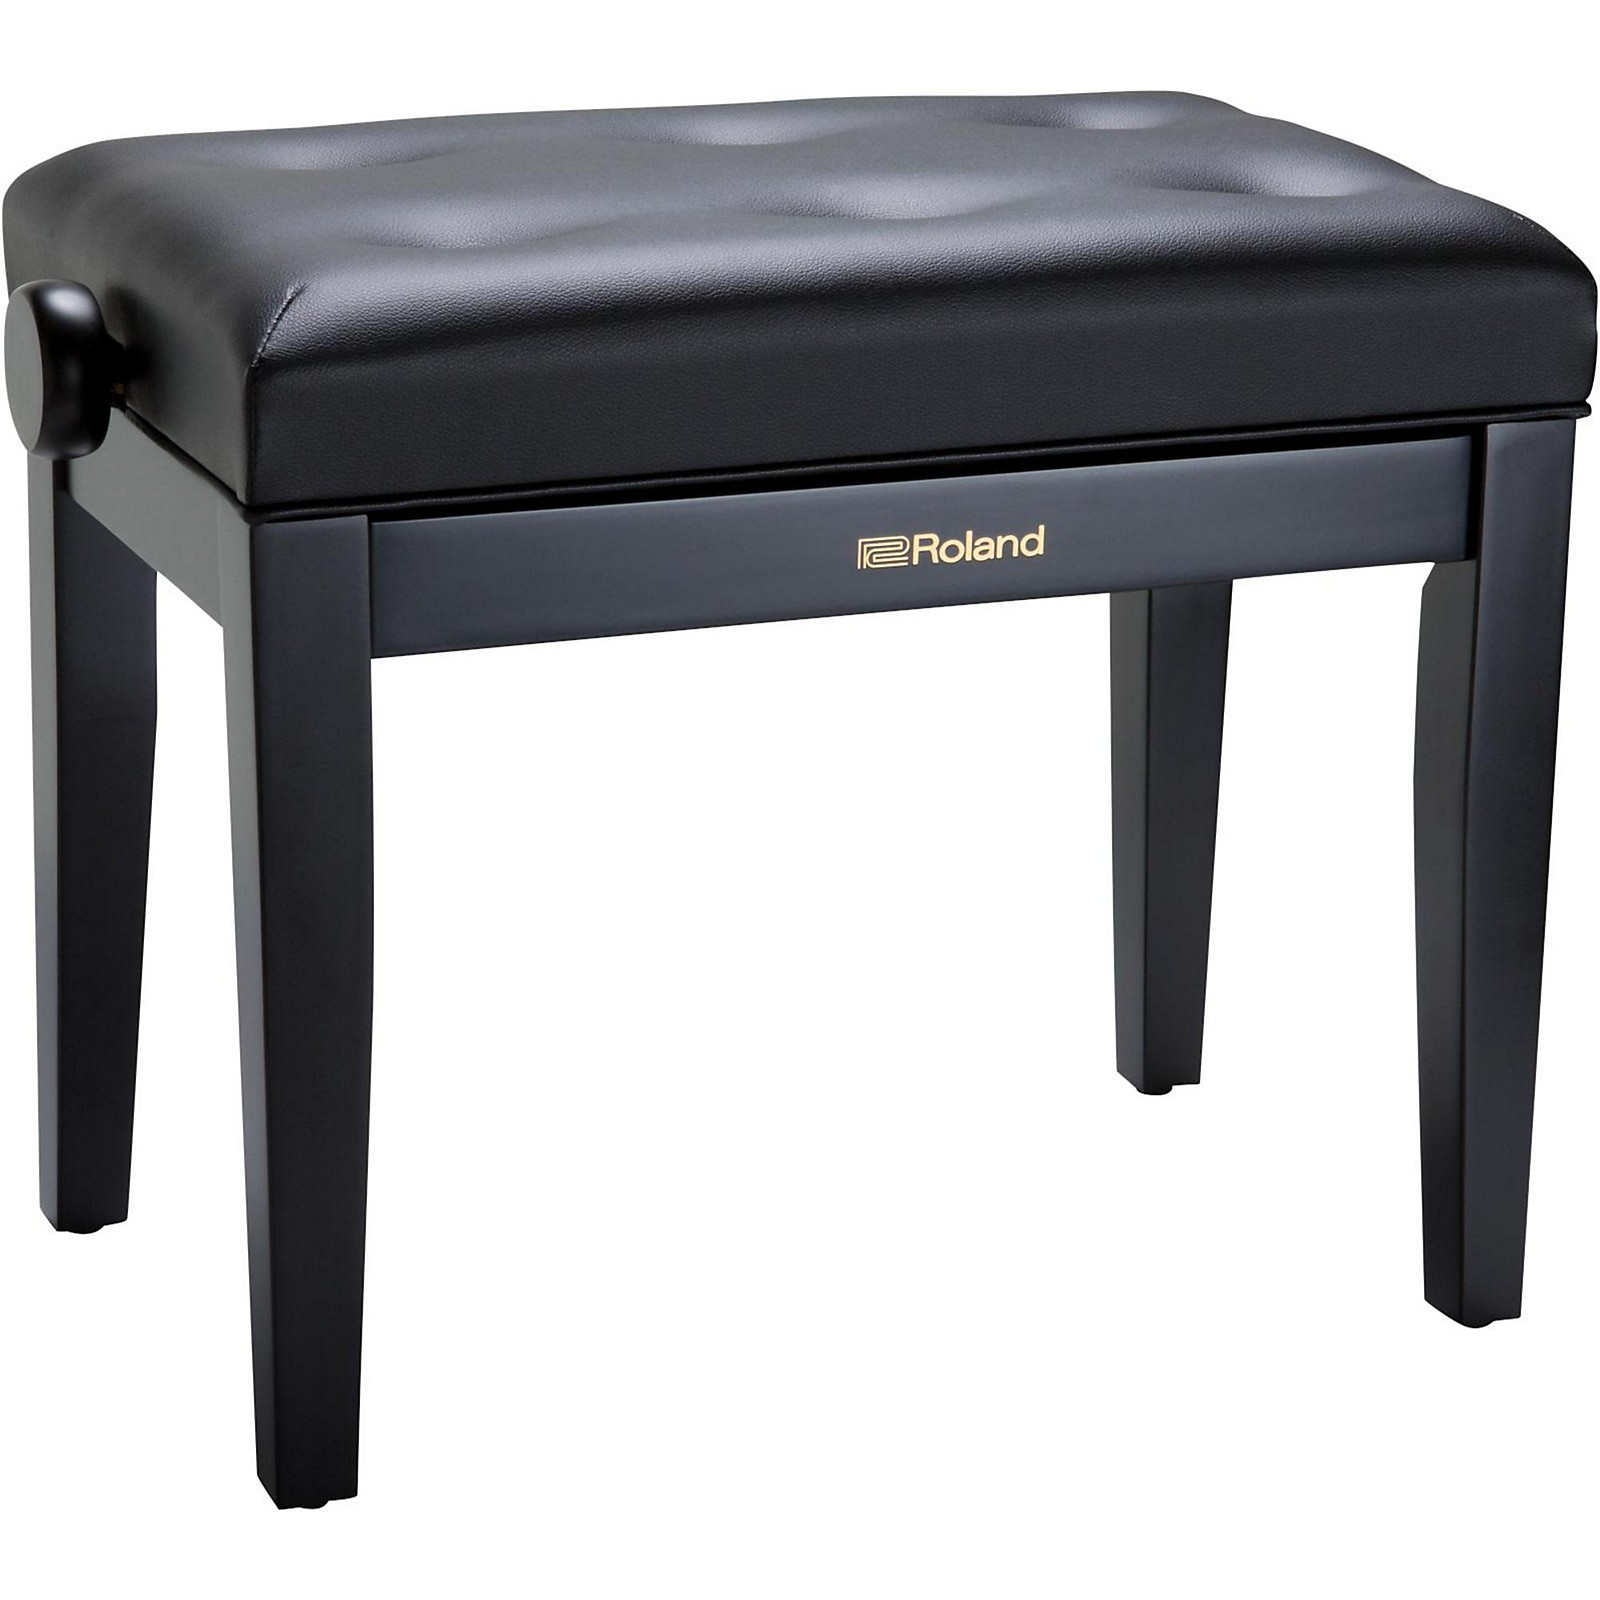 Roland Piano Bench with Cushioned Seat